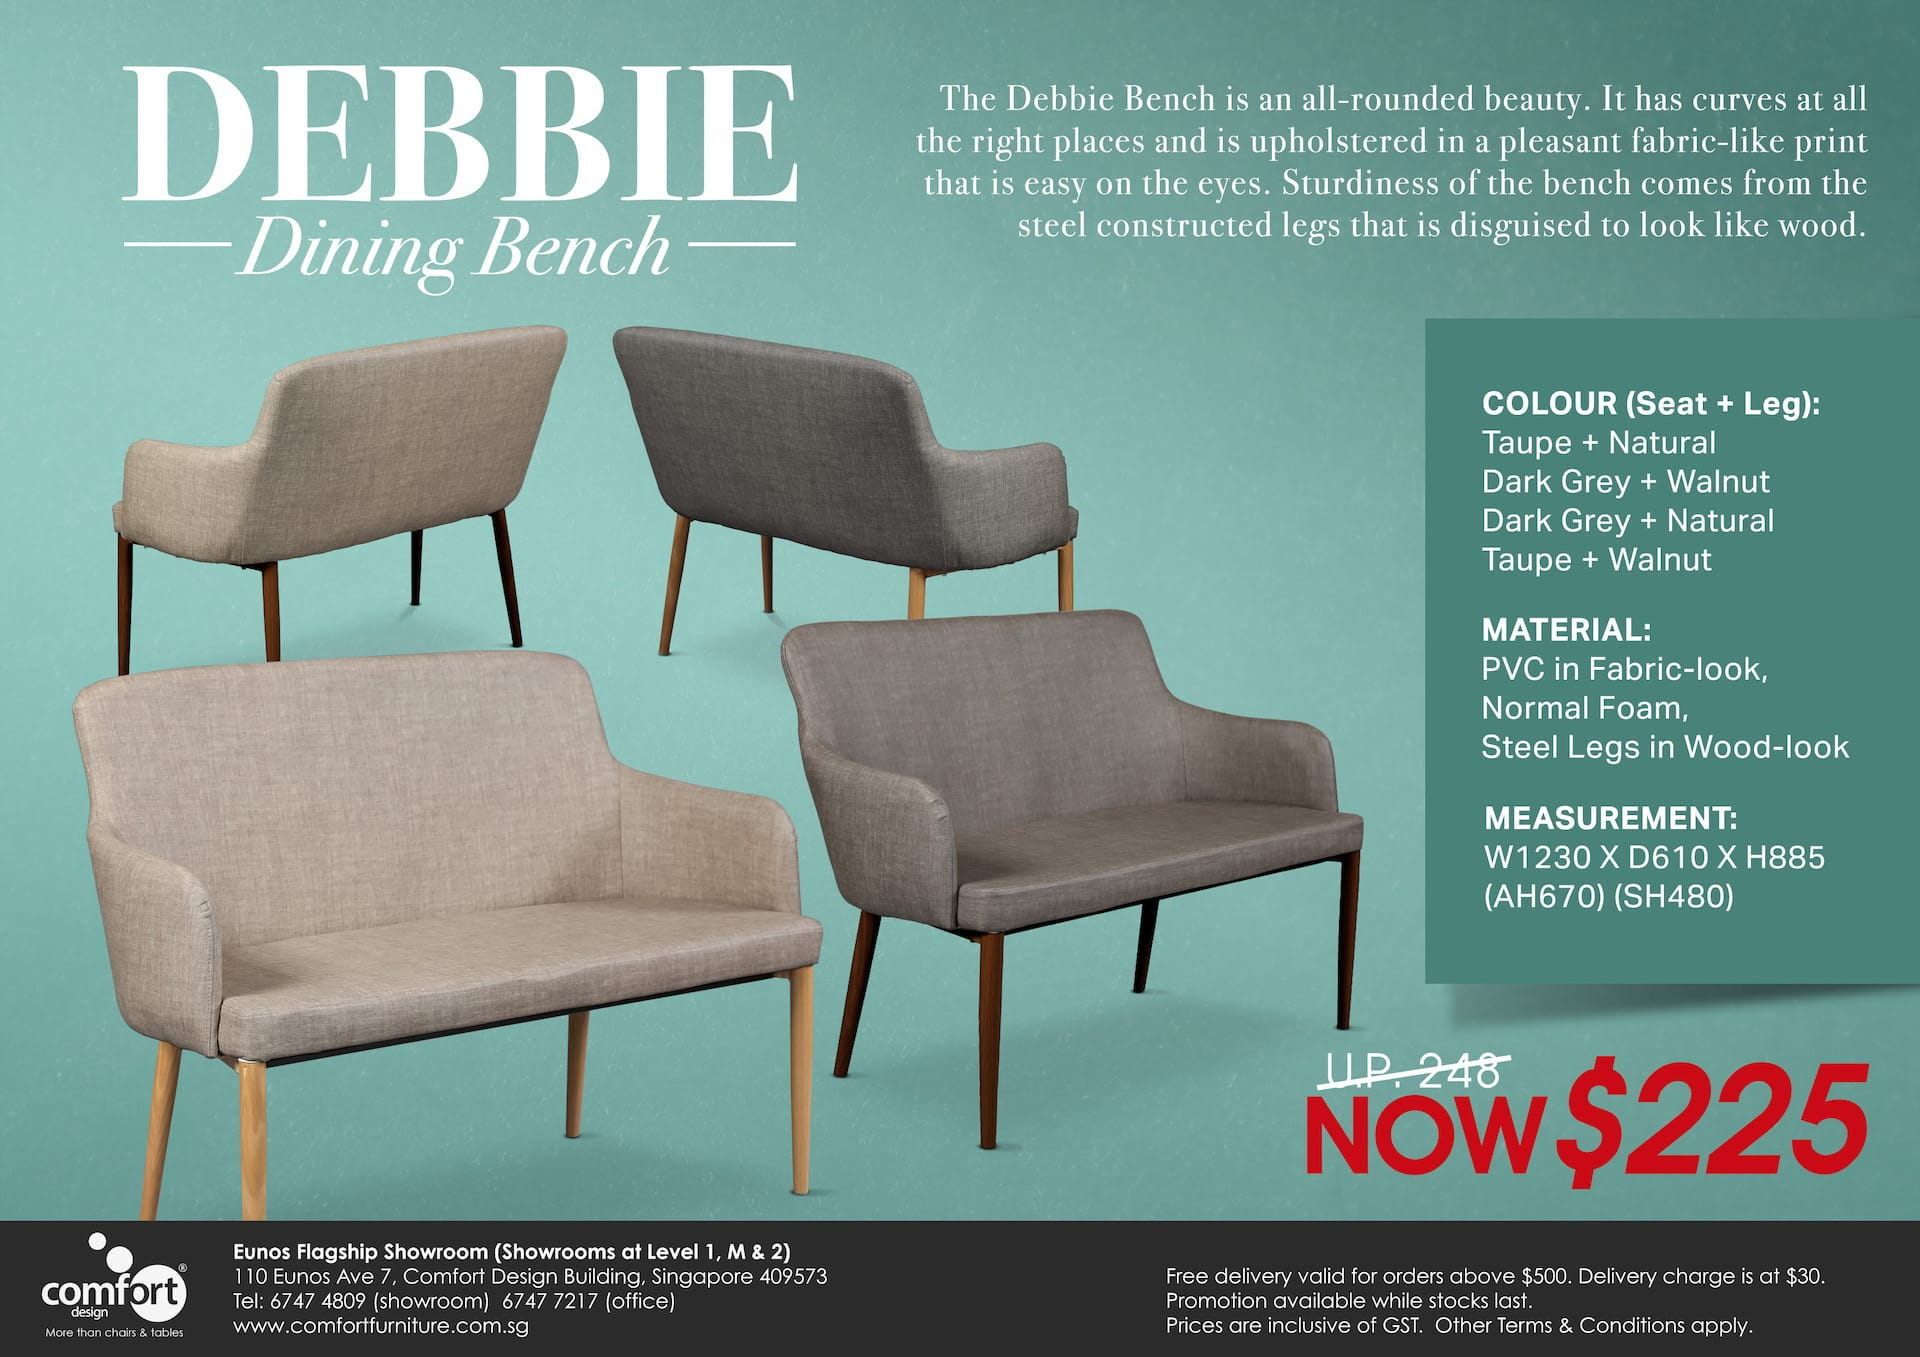 Debbie Dining Bench